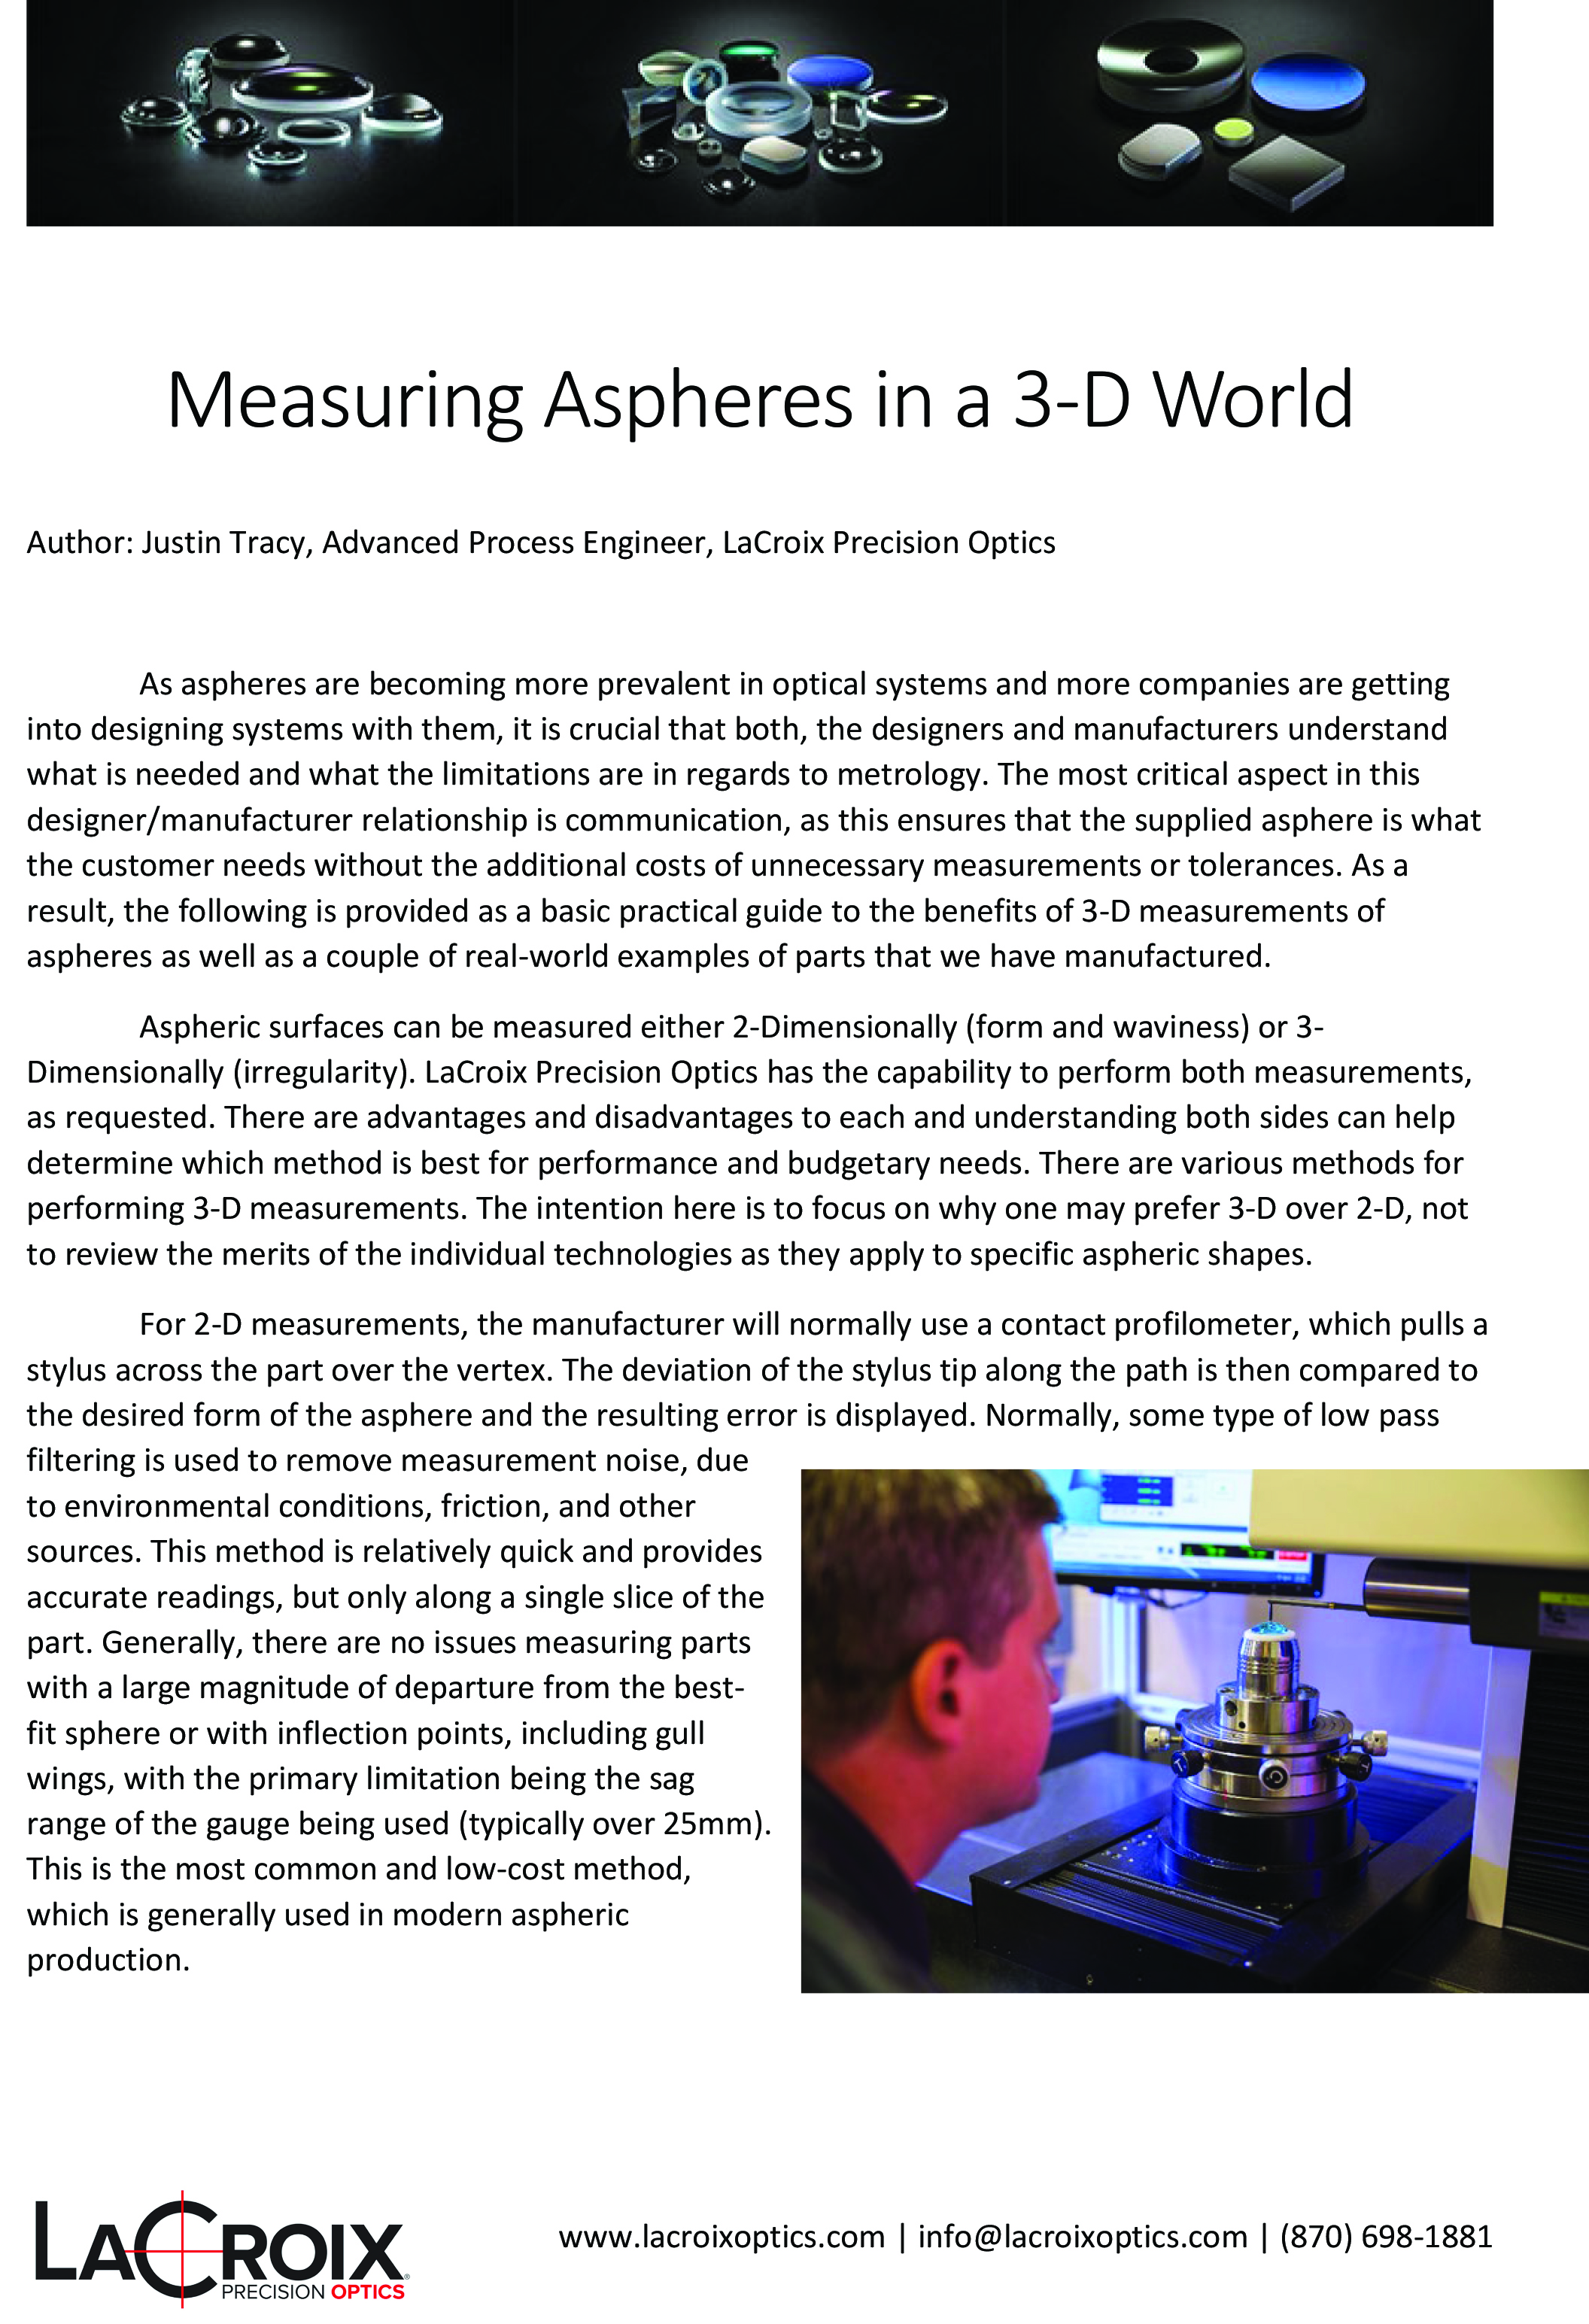 Measuring Aspheres in a 3-D World